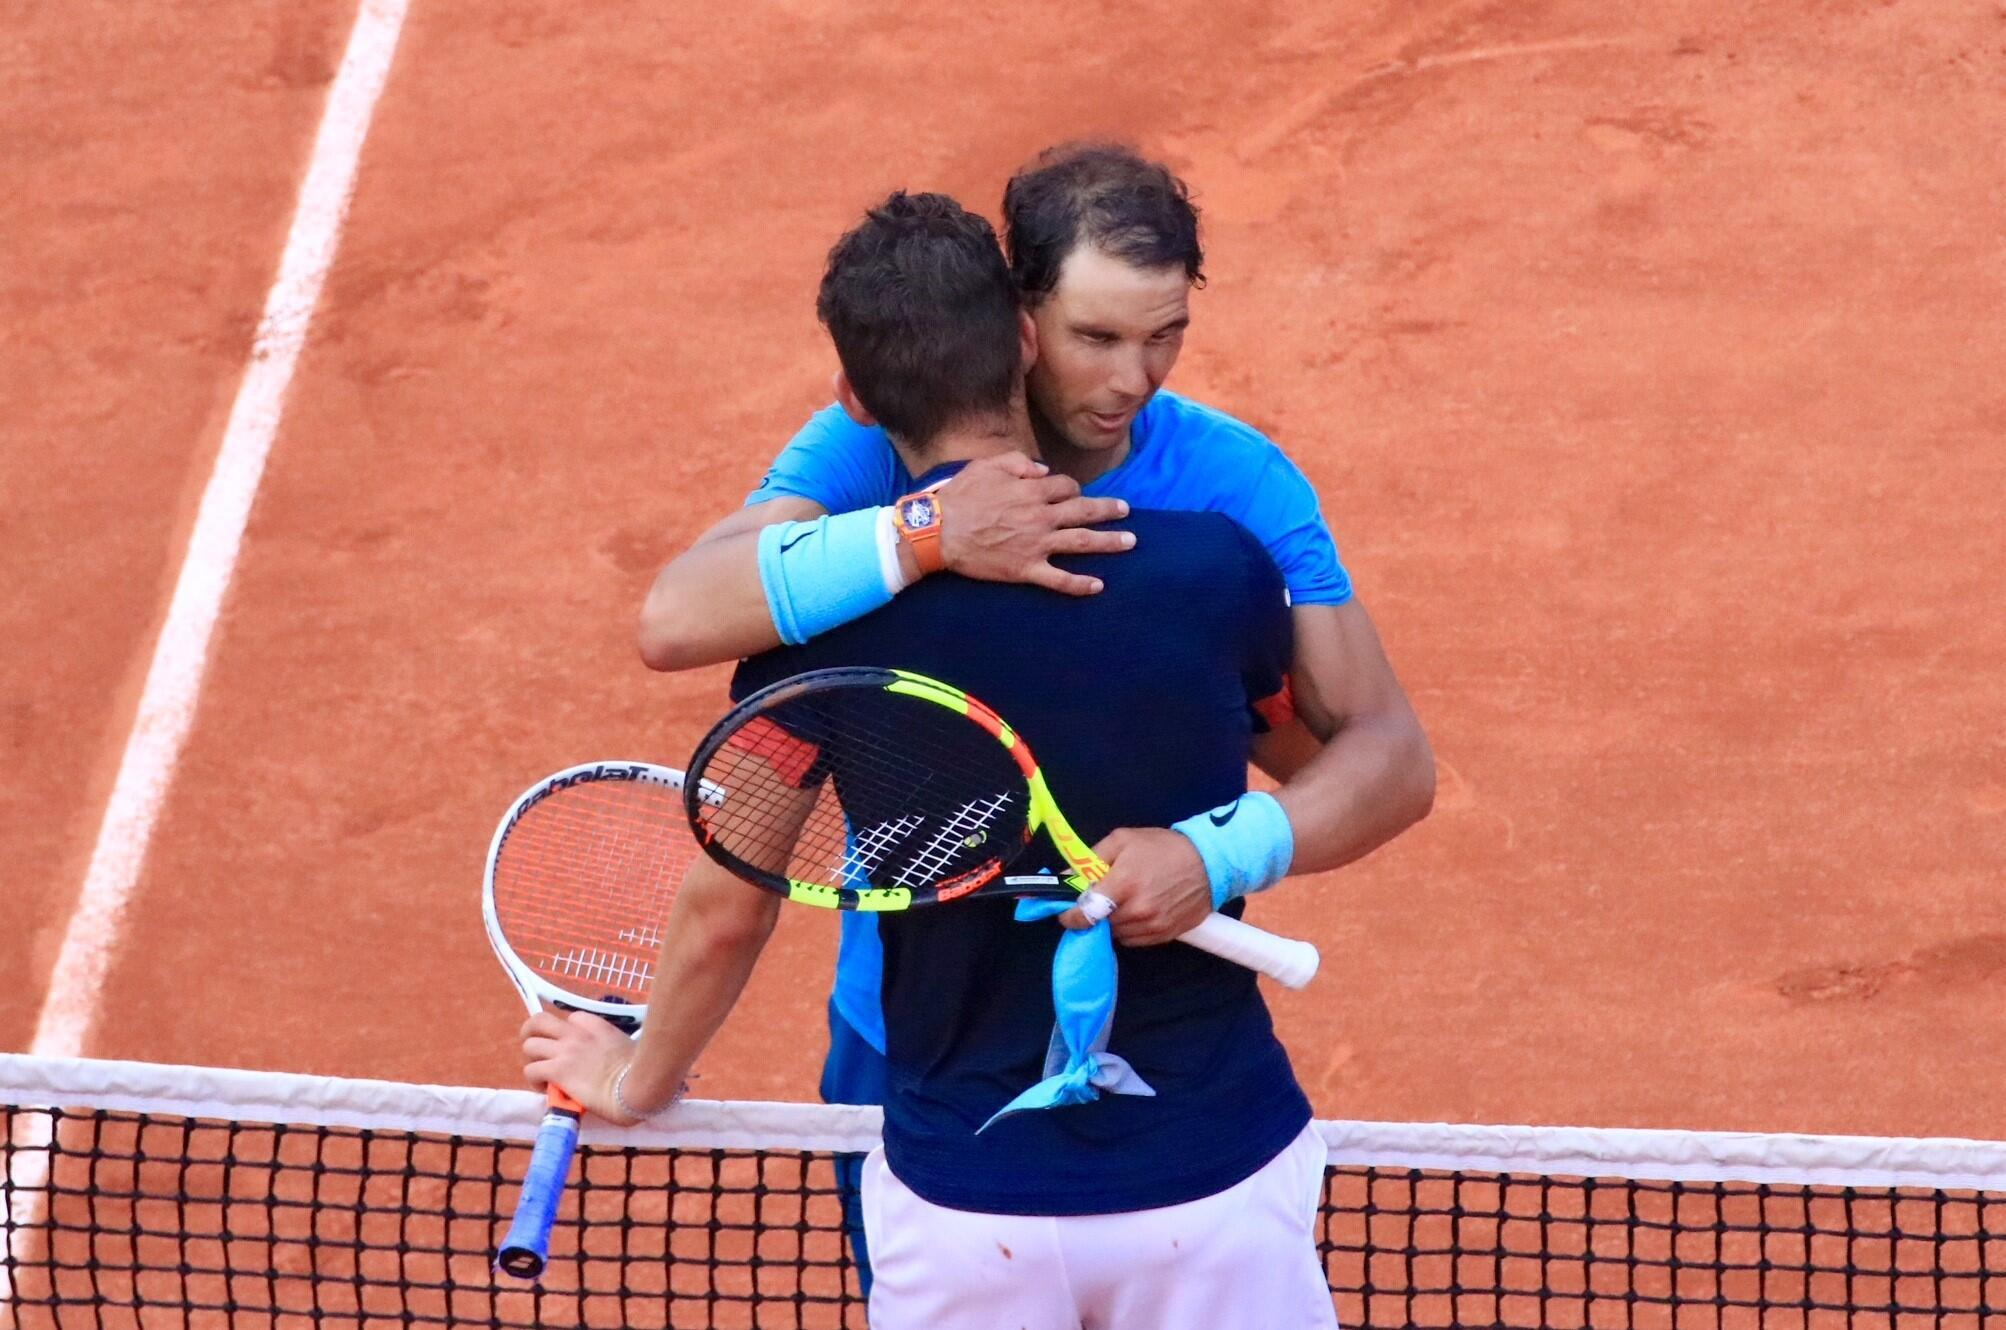 Rafael Nadal beat Dominic Theim in the 2018 French Open final.